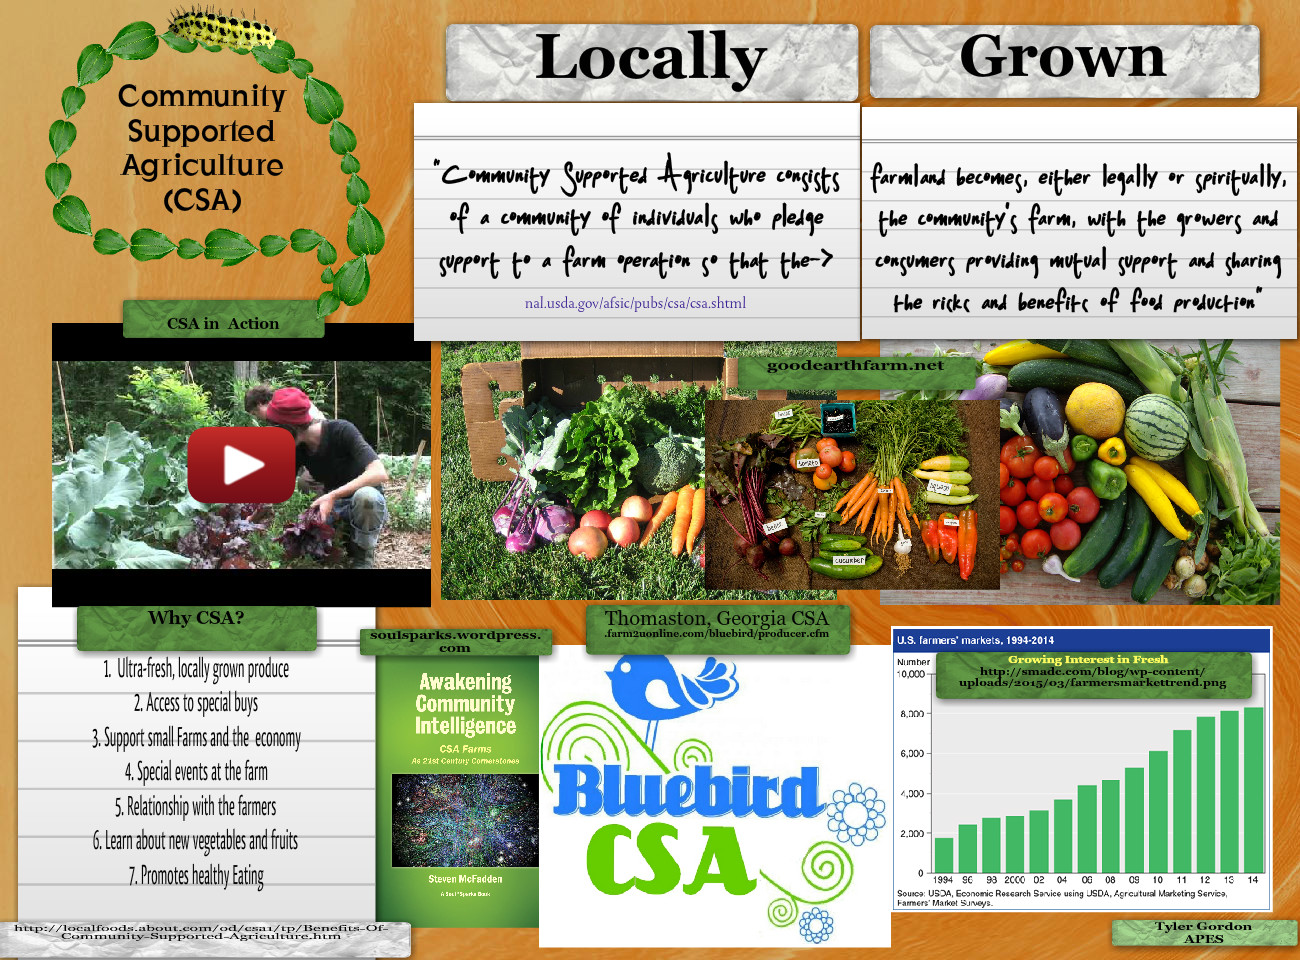 Community Supported Agriculture (CSA)